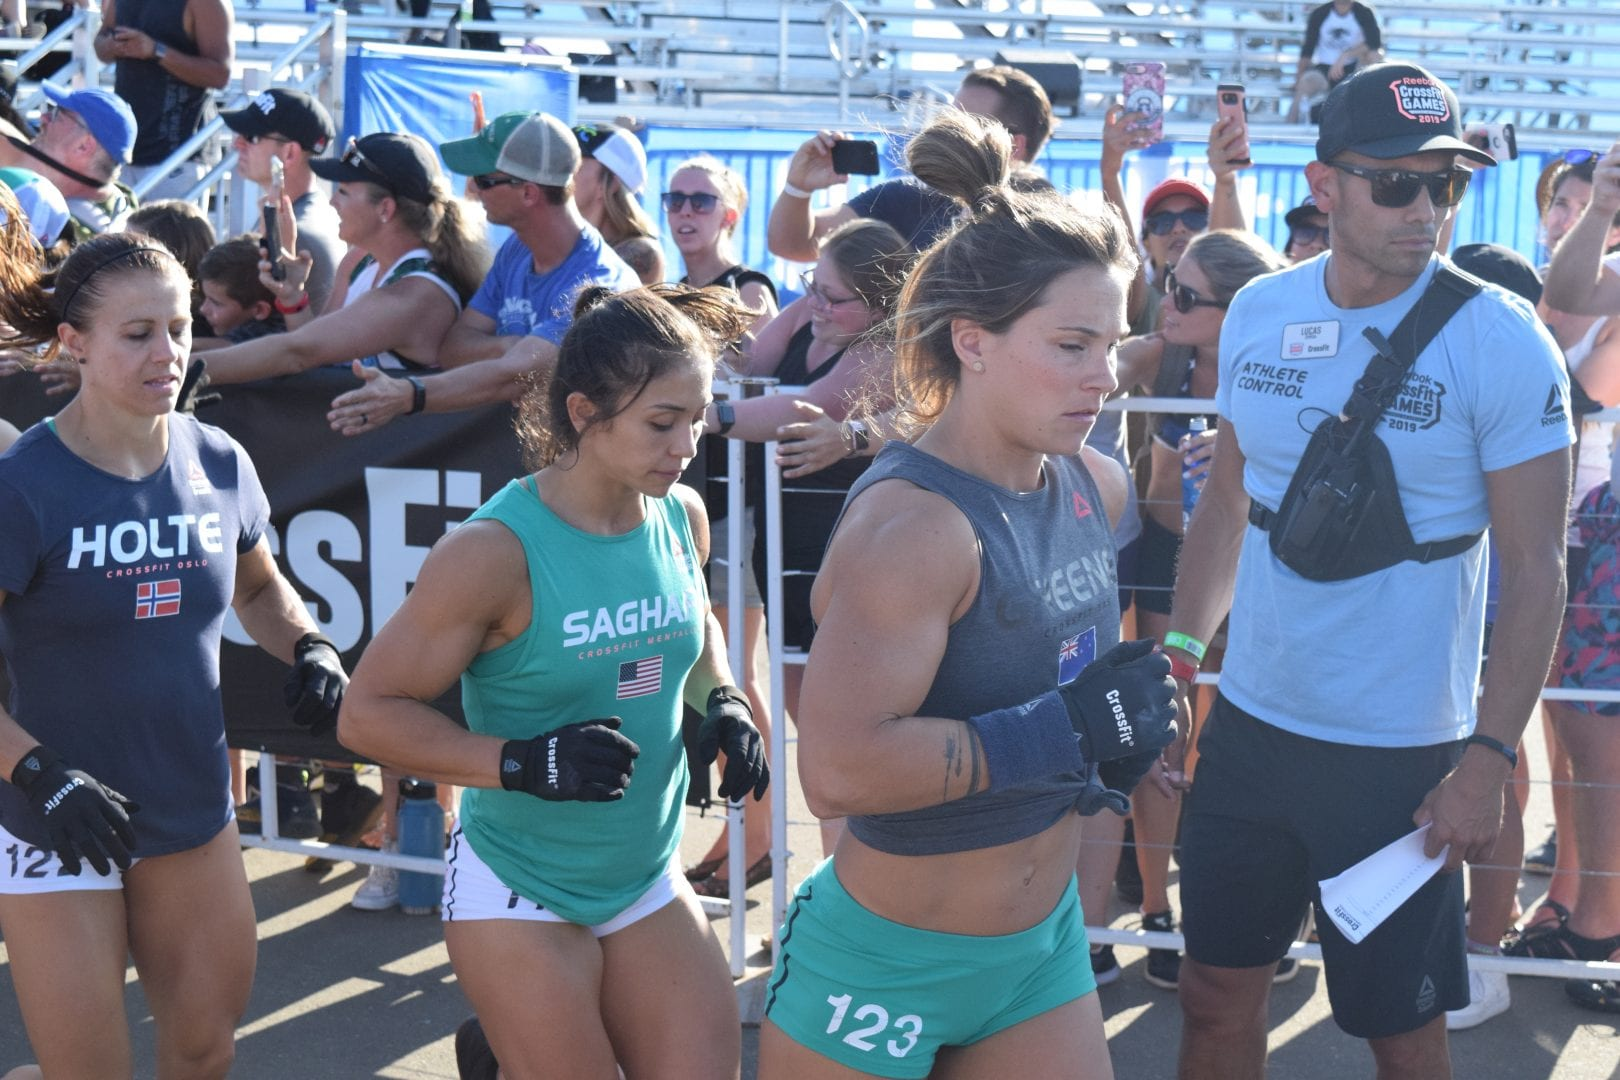 Jamie Greene enters the stadium for the first event of the 2019 CrossFit Games